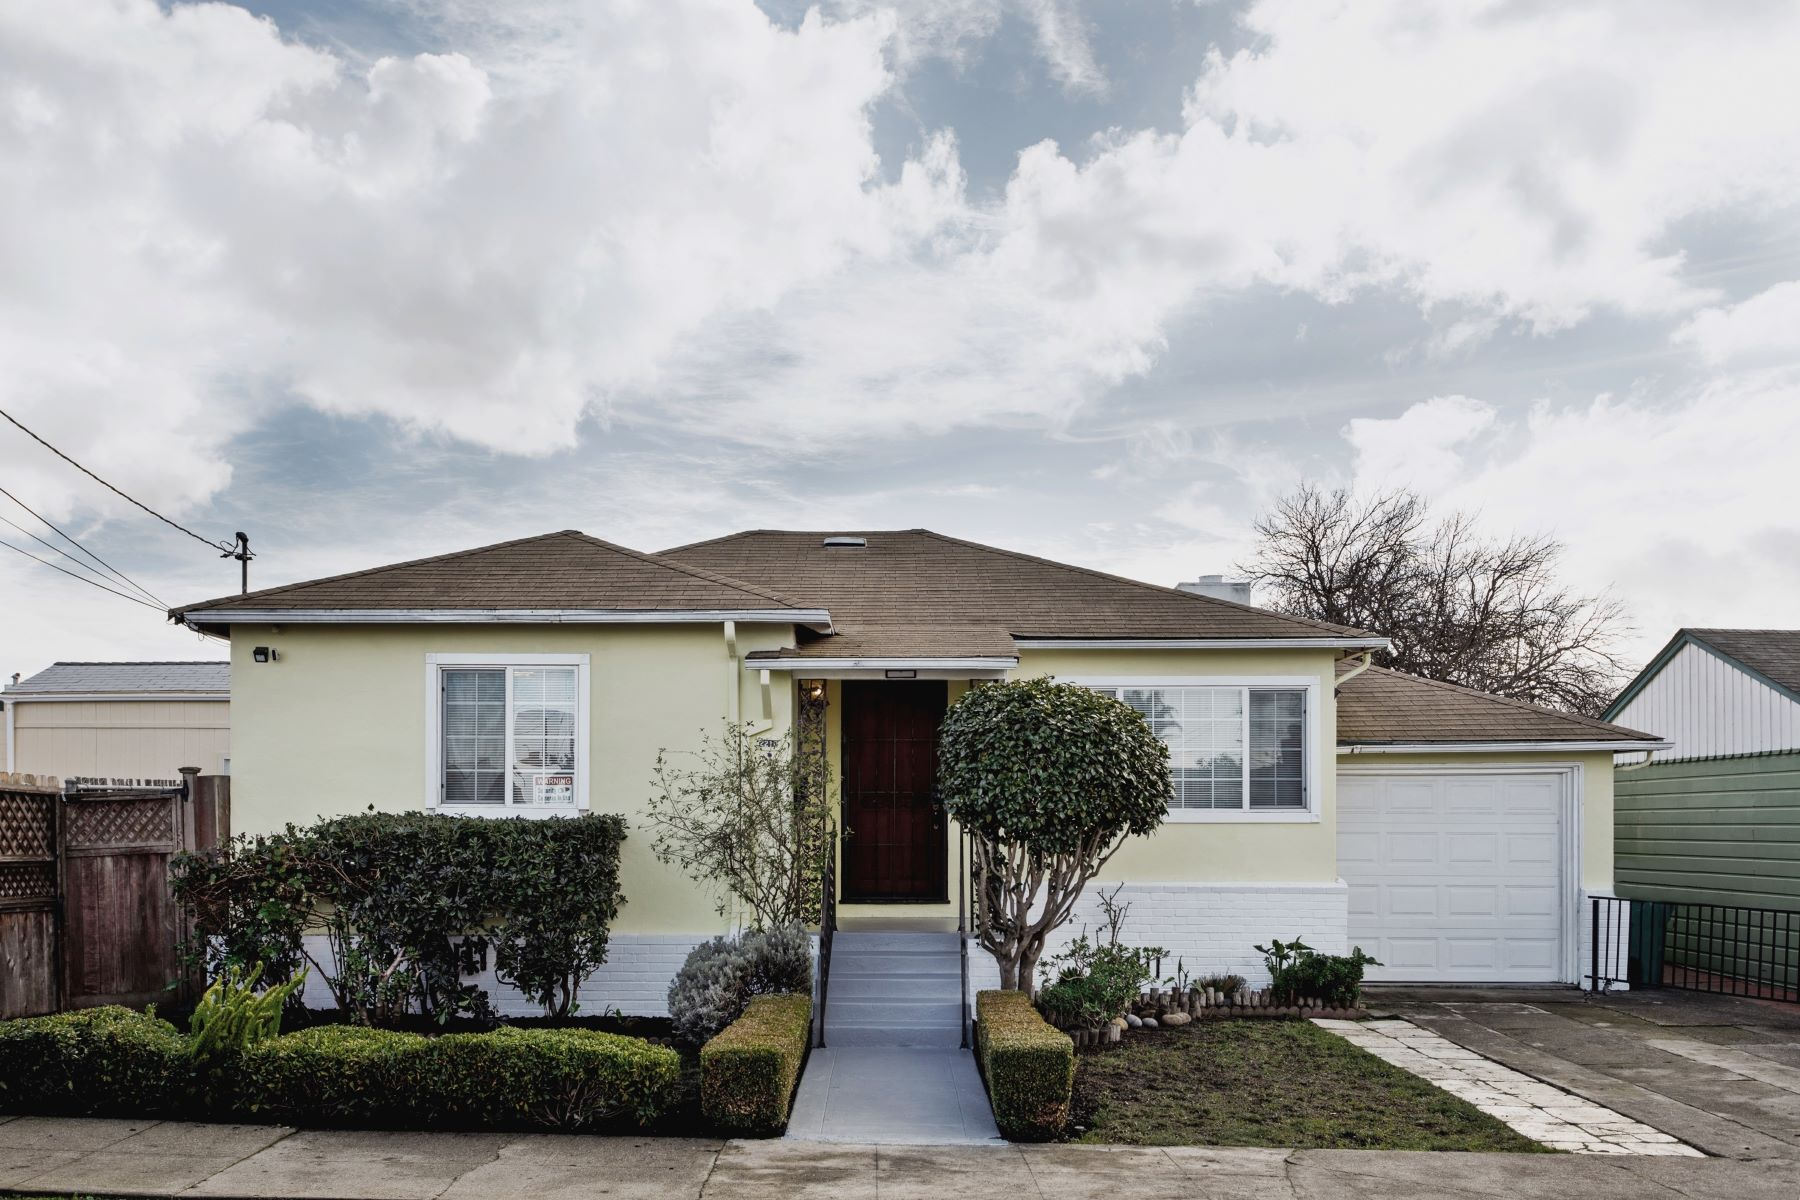 Single Family Homes for Sale at Bungalow With Detached In-Law Studio 2210 Visalia Avenue Richmond, California 94801 United States